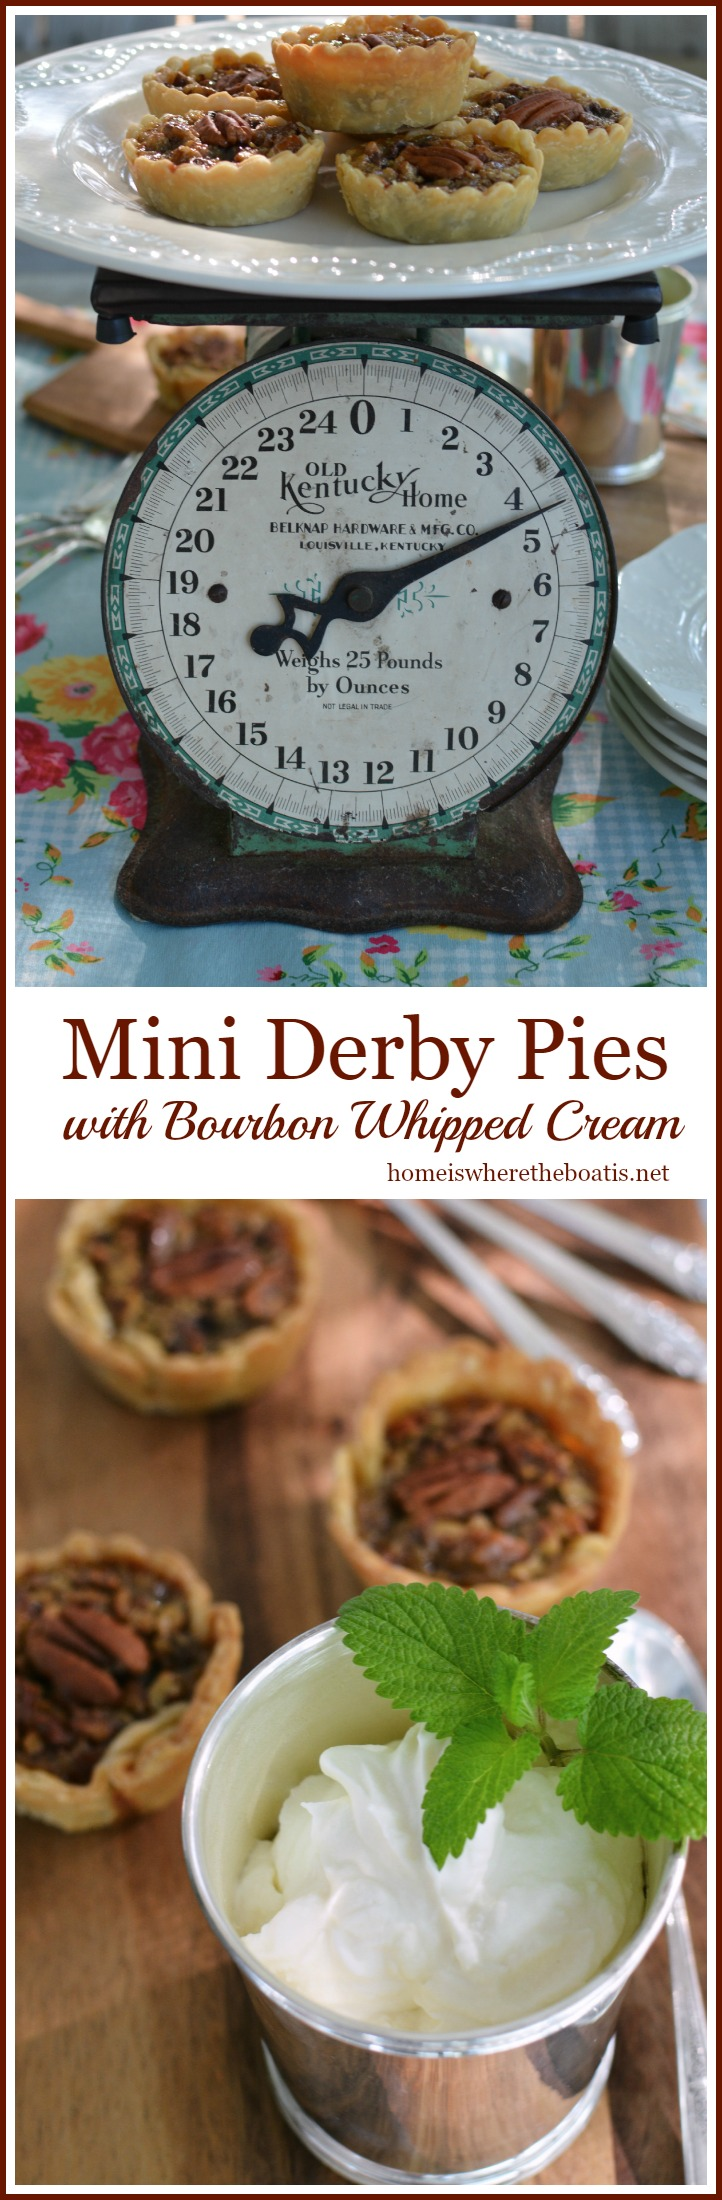 Mini Derby Pies with Bourbon Whipped Cream | homeiswheretheboatis.net ...